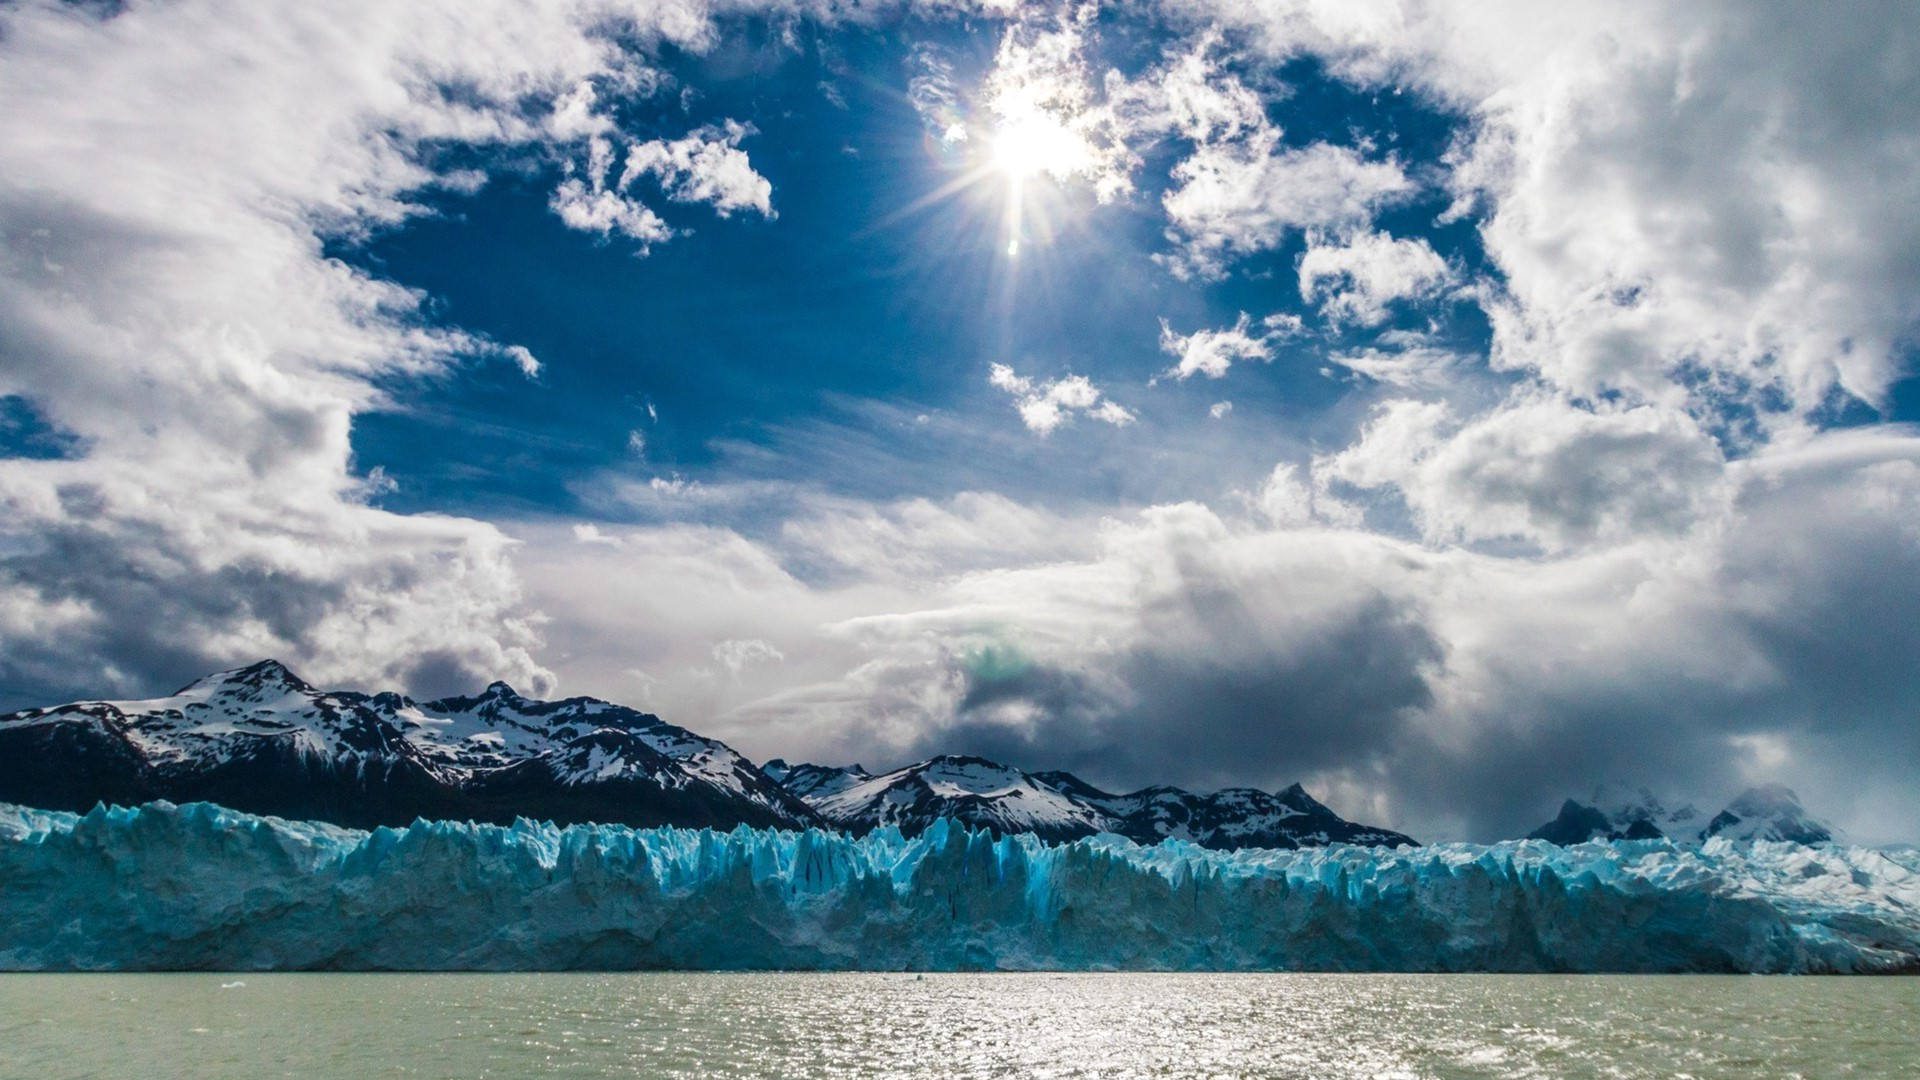 Full Hd God Wallpaper Download Nature Landscape Water Sea Sun Clouds Mountains Ice